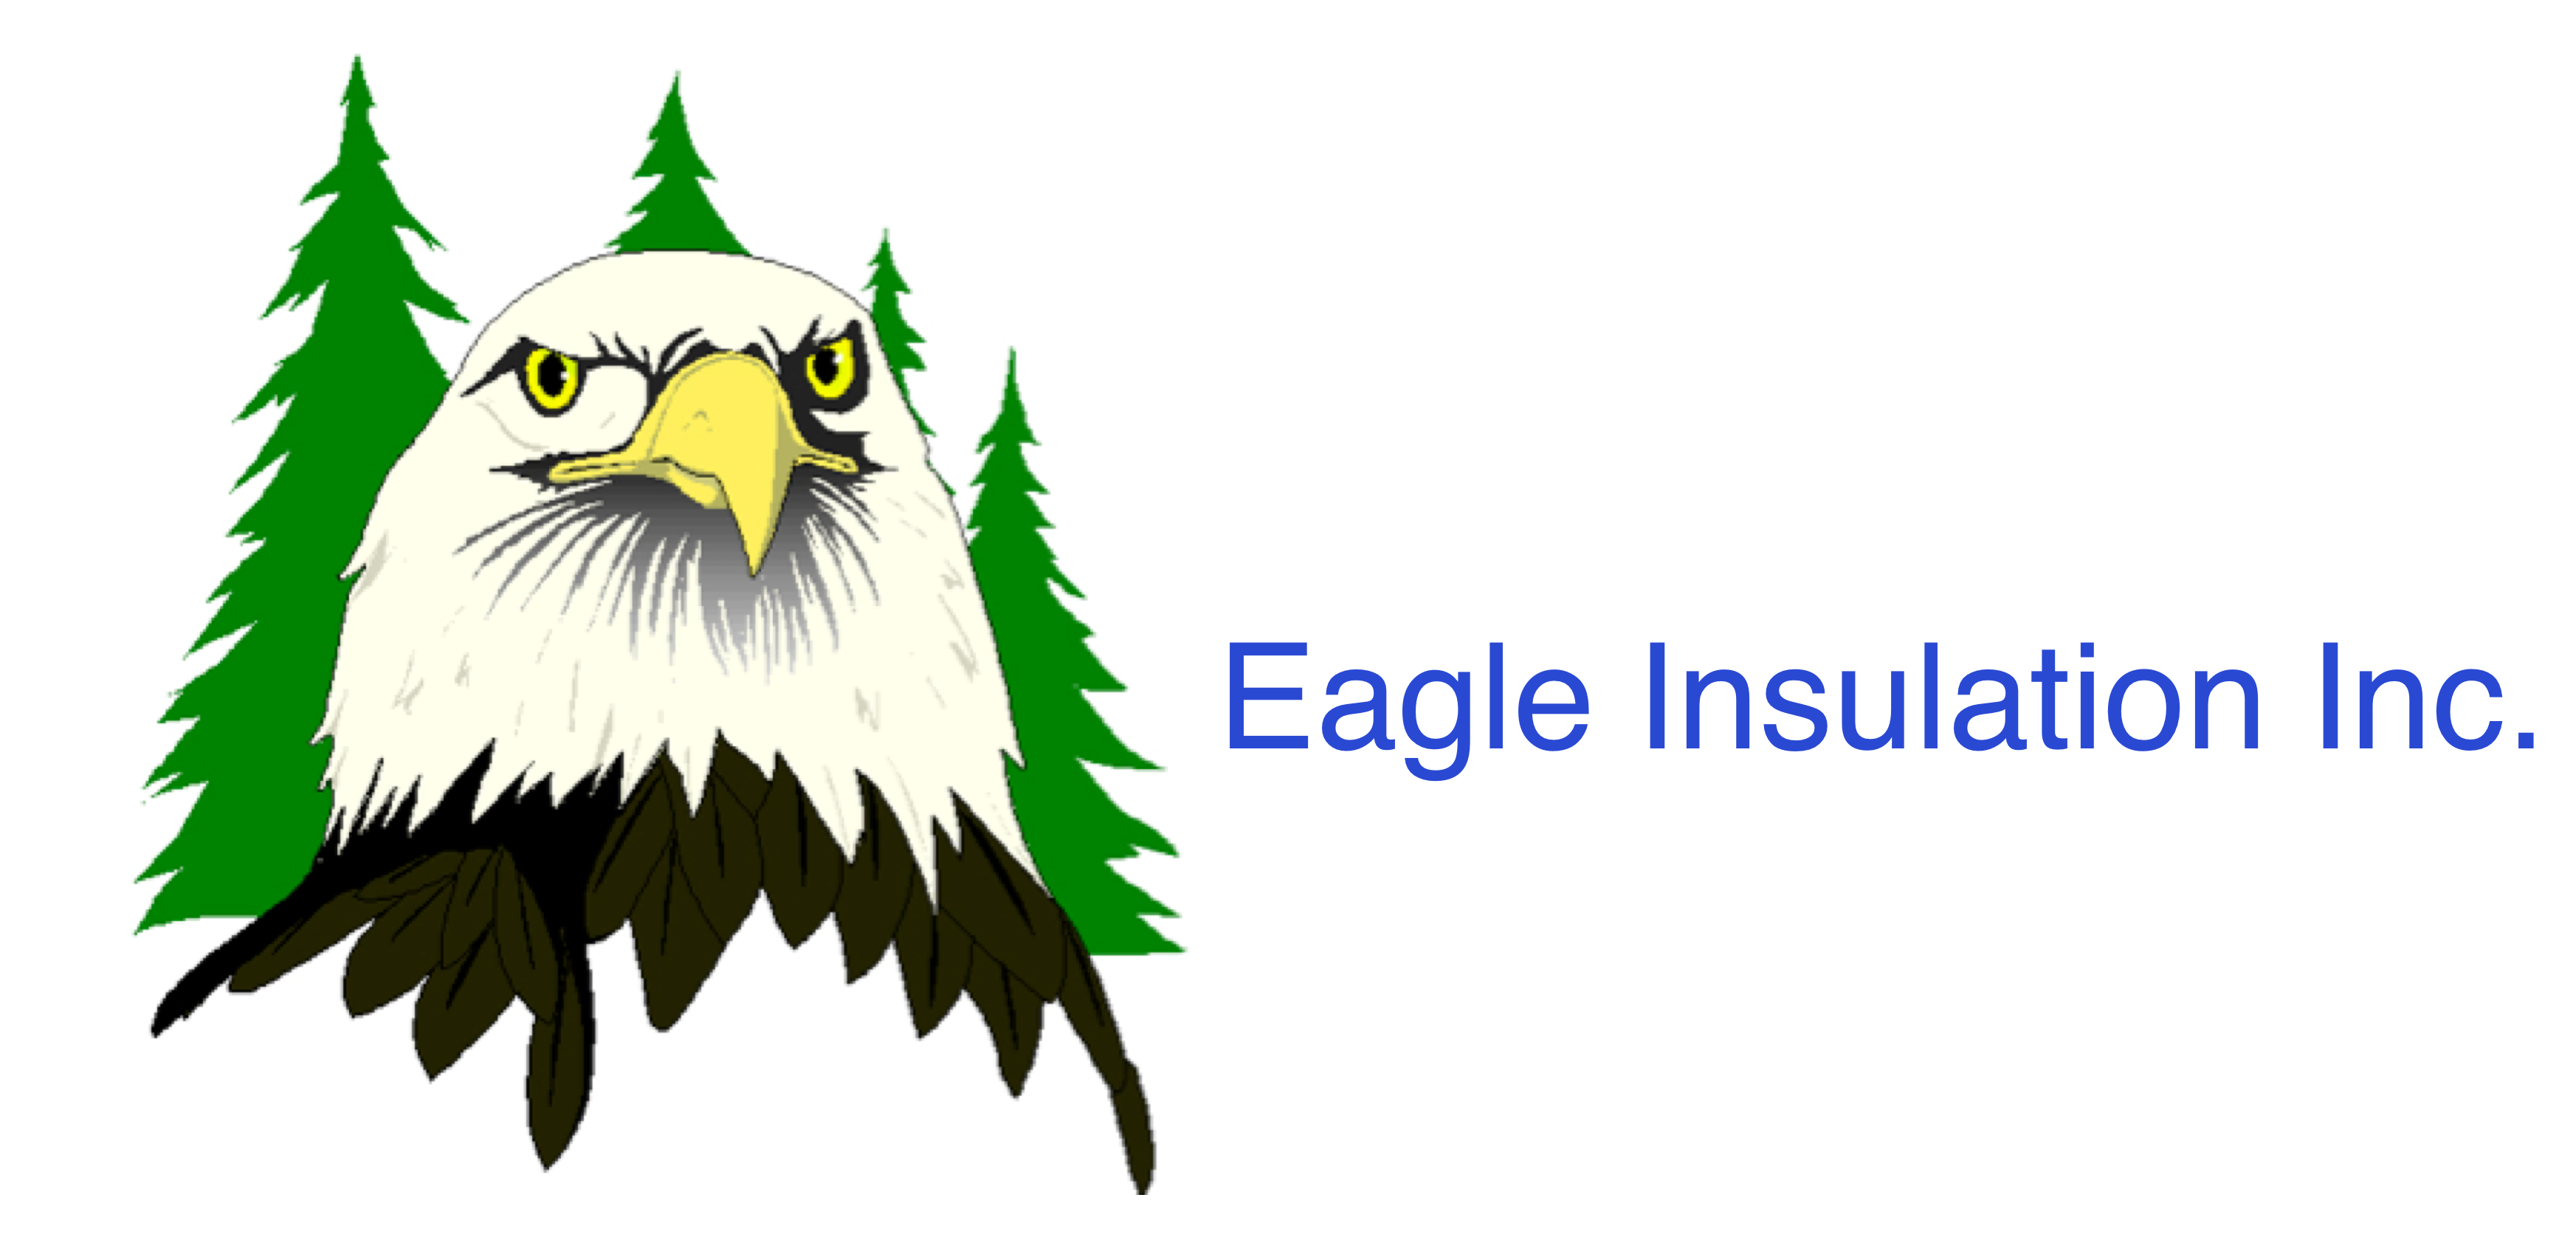 Eagle Insulation Inc.